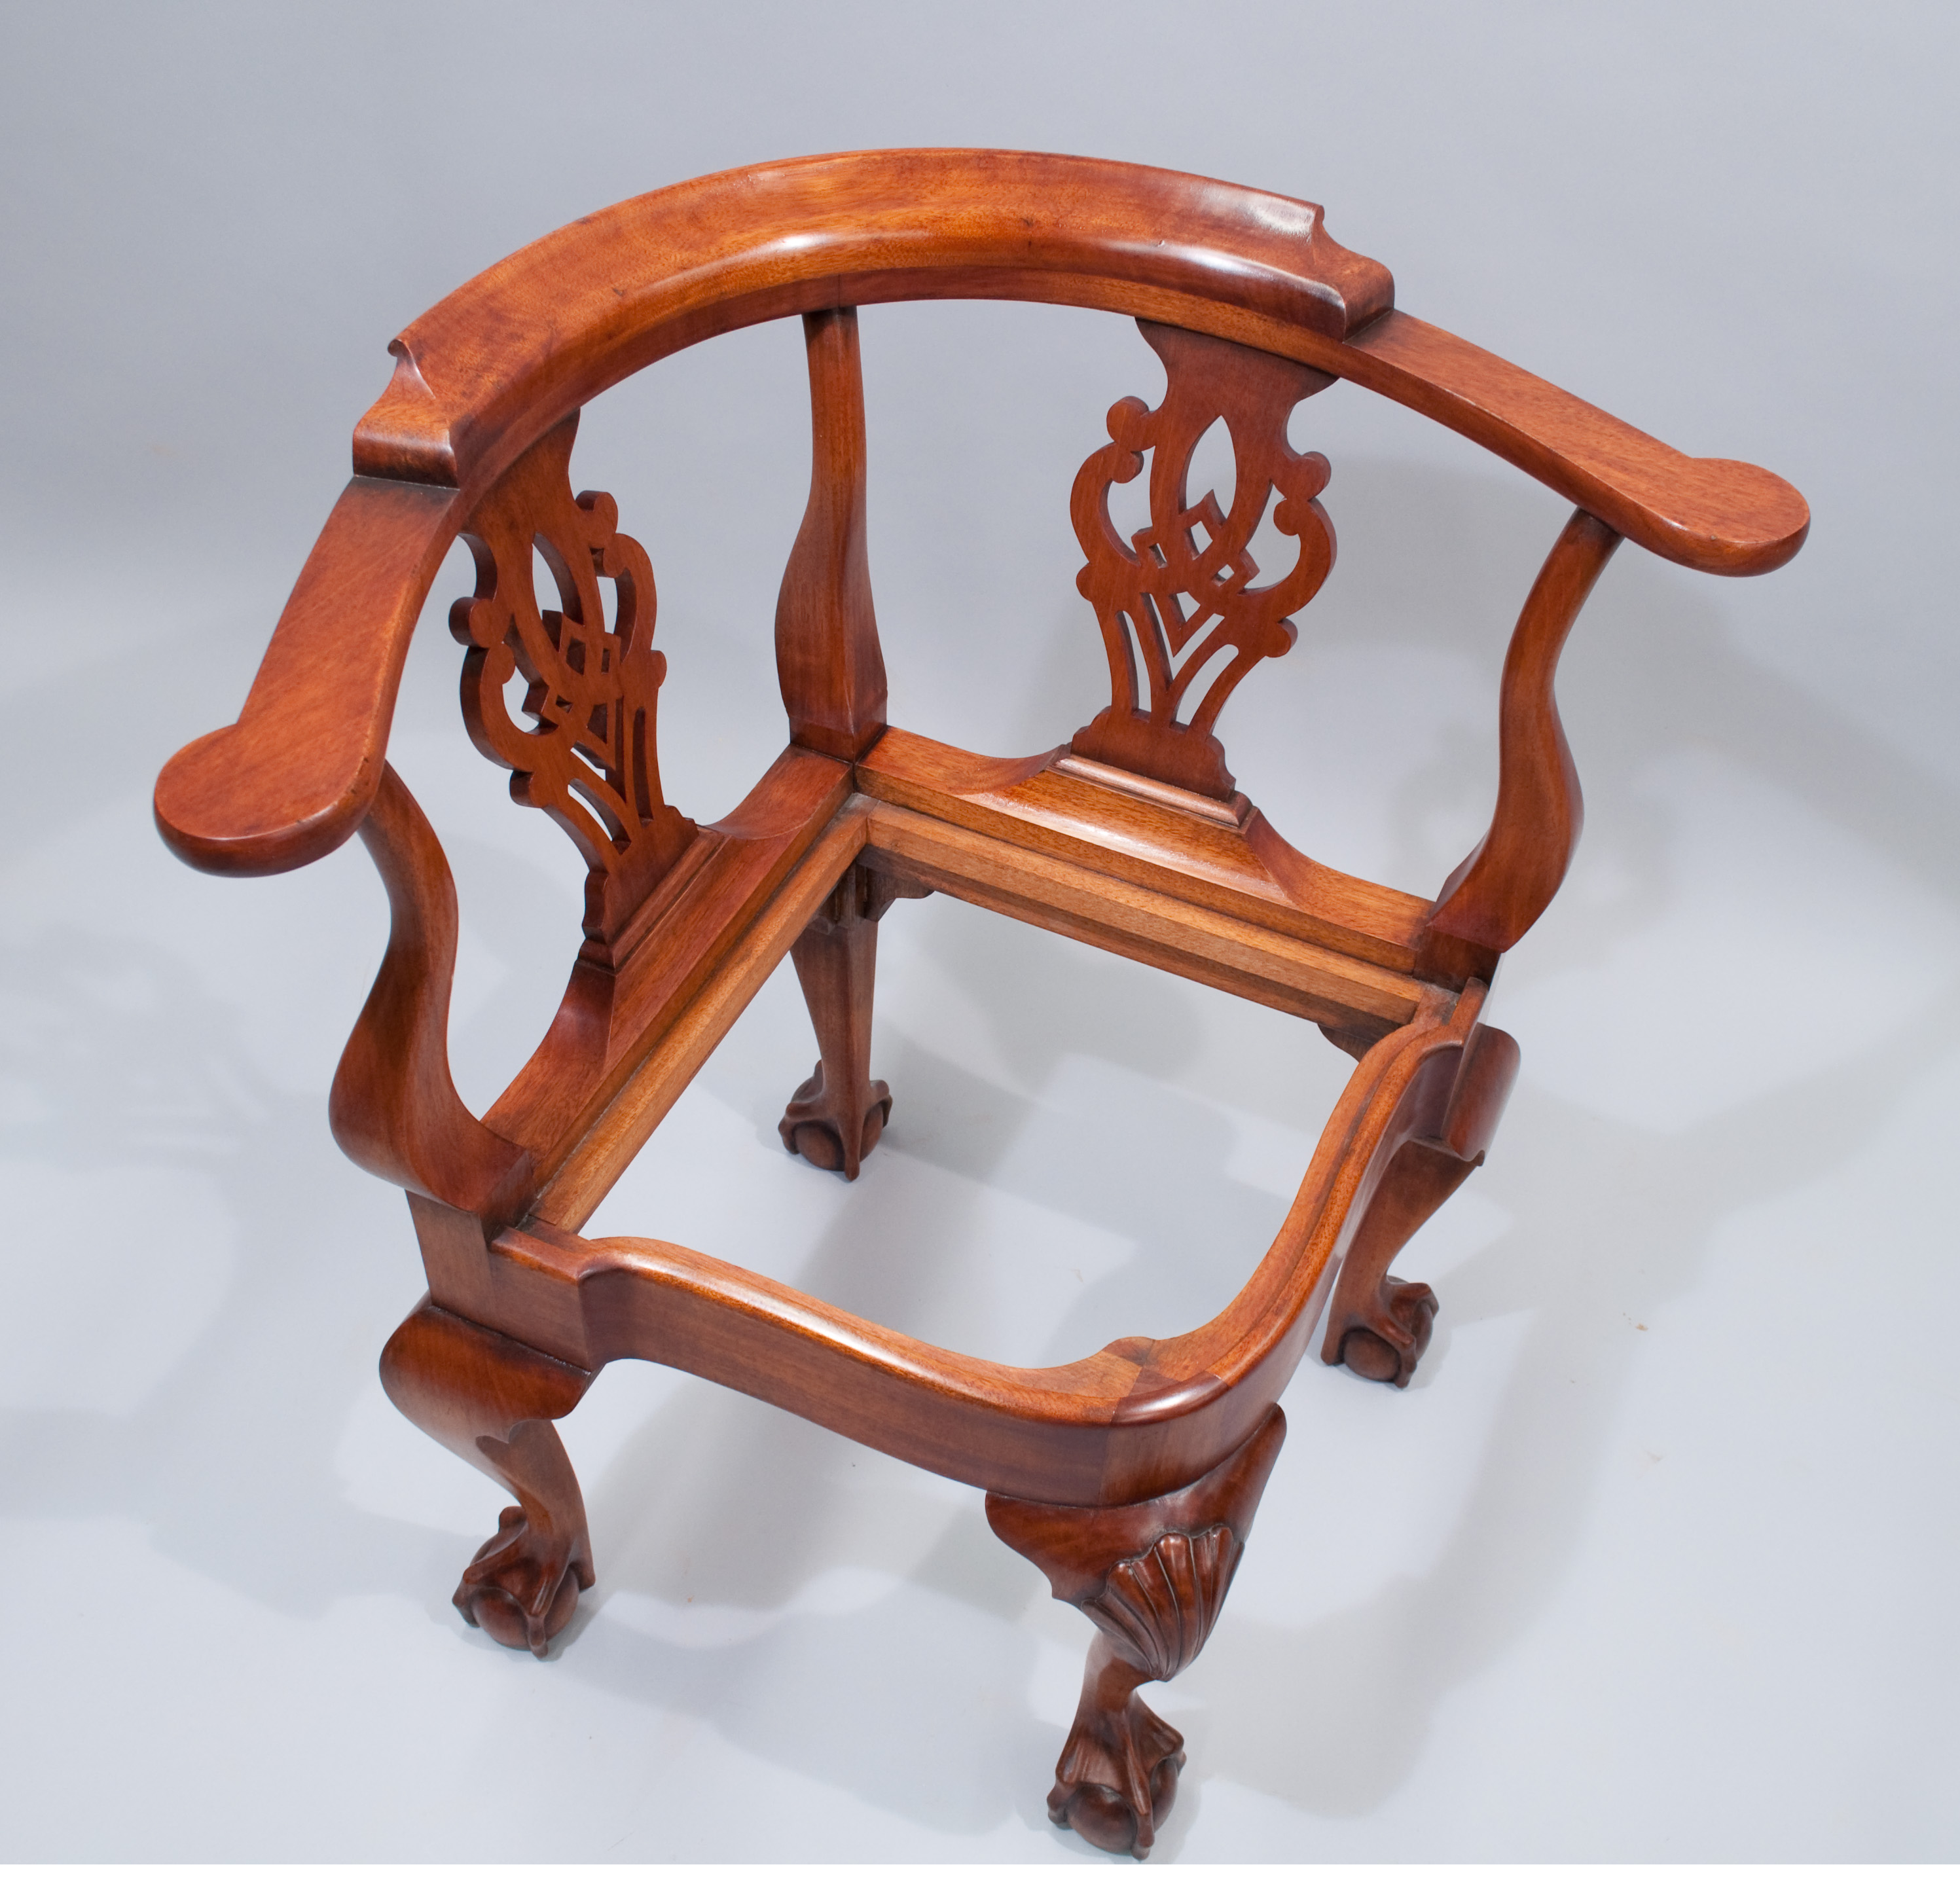 ... Corner Chair. It Was Commissioned Based On A Chair In The Museum Of  Fine Arts In Boston. The Finish Is Color Matched And Distressed To Match An  Existing ...